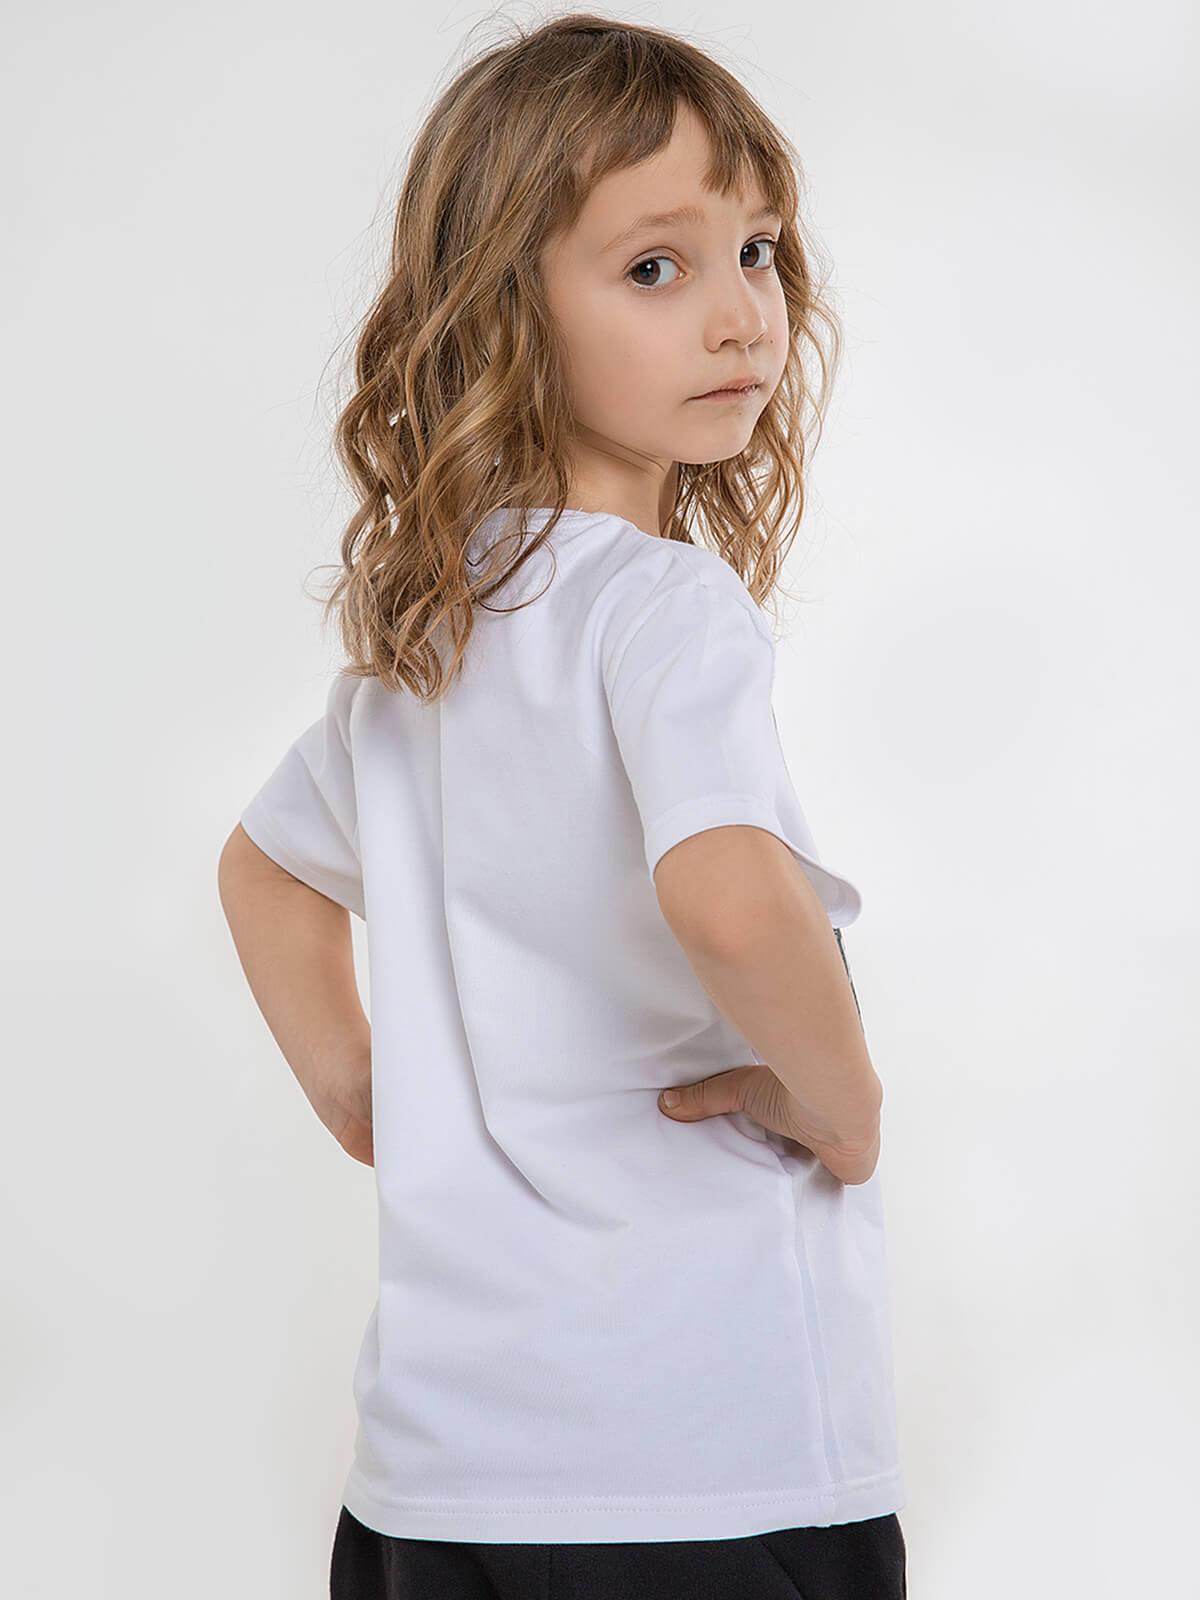 Kids T-Shirt Syla. Color white.  Technique of prints applied:  silkscreen printing, embroidery.